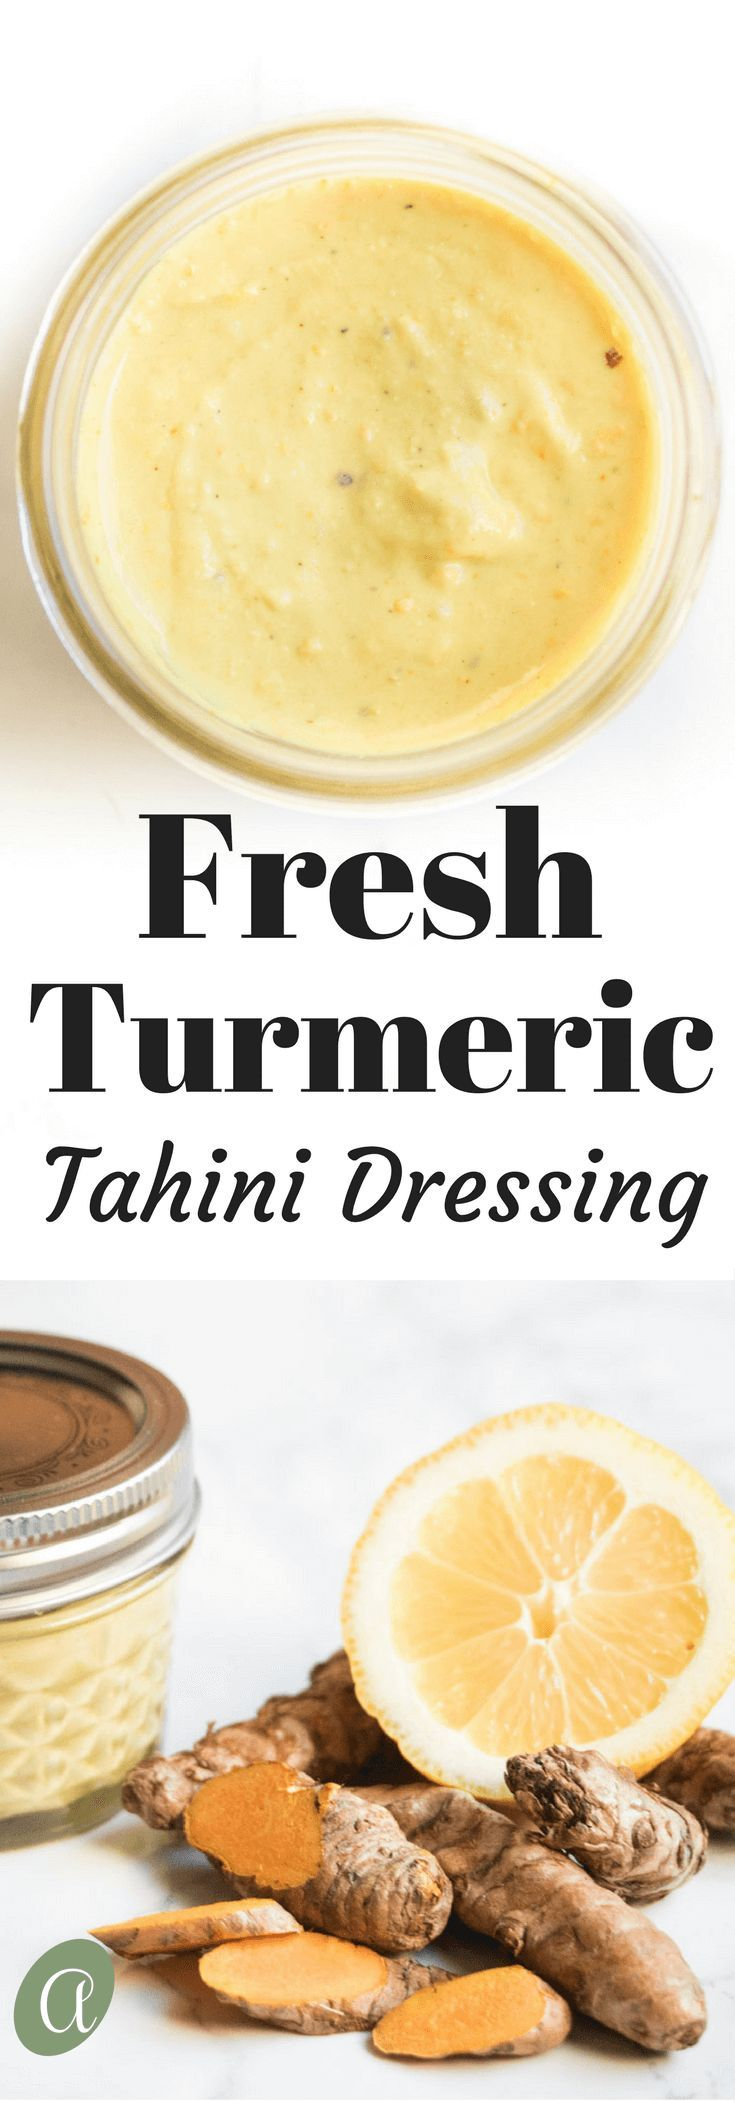 Fresh turmeric tahini dressing, only 3 ingredients. Citrusy rich and creamy, this dressing makes every salad better!  abraskitchen.com